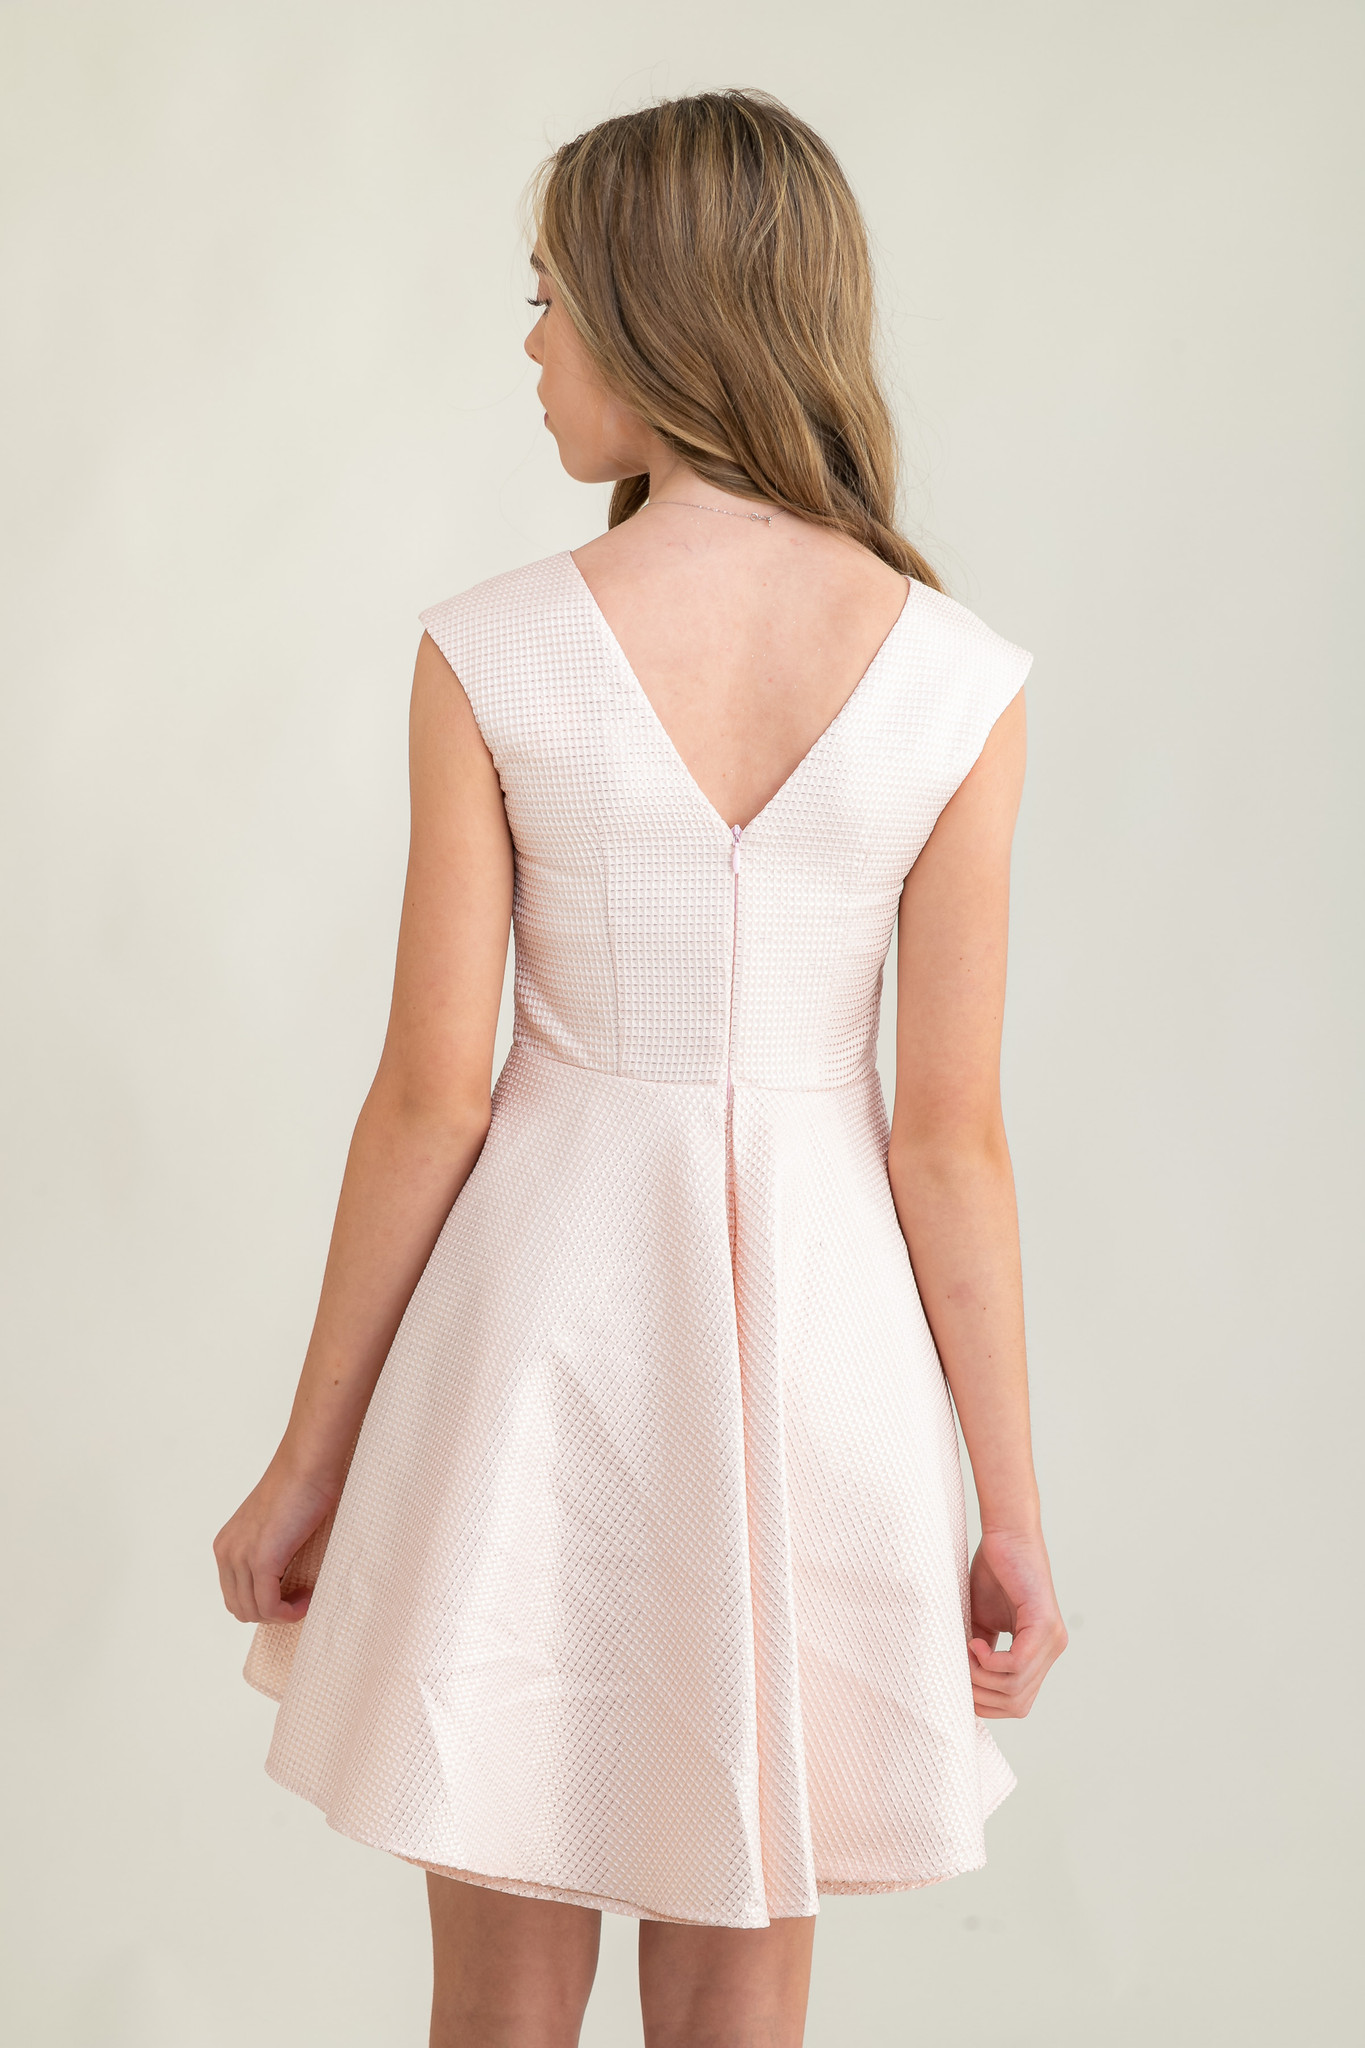 Blush Pink Quilted Dress in Longer Length.